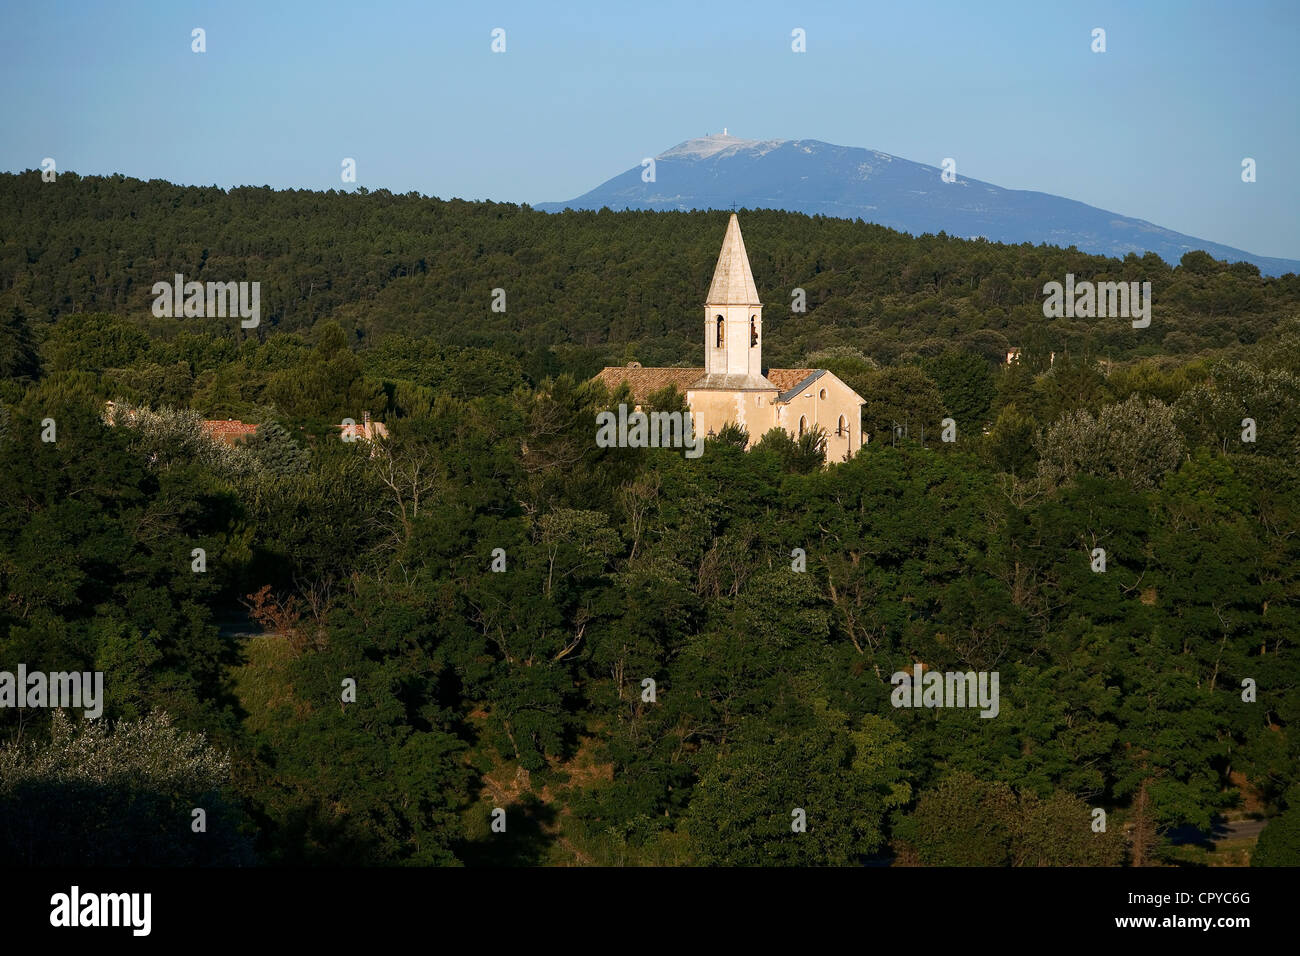 France, Vaucluse, near Bollene, Eglise Saint Pierre (St Peter Church), in the background, the Mont Ventoux - Stock Image